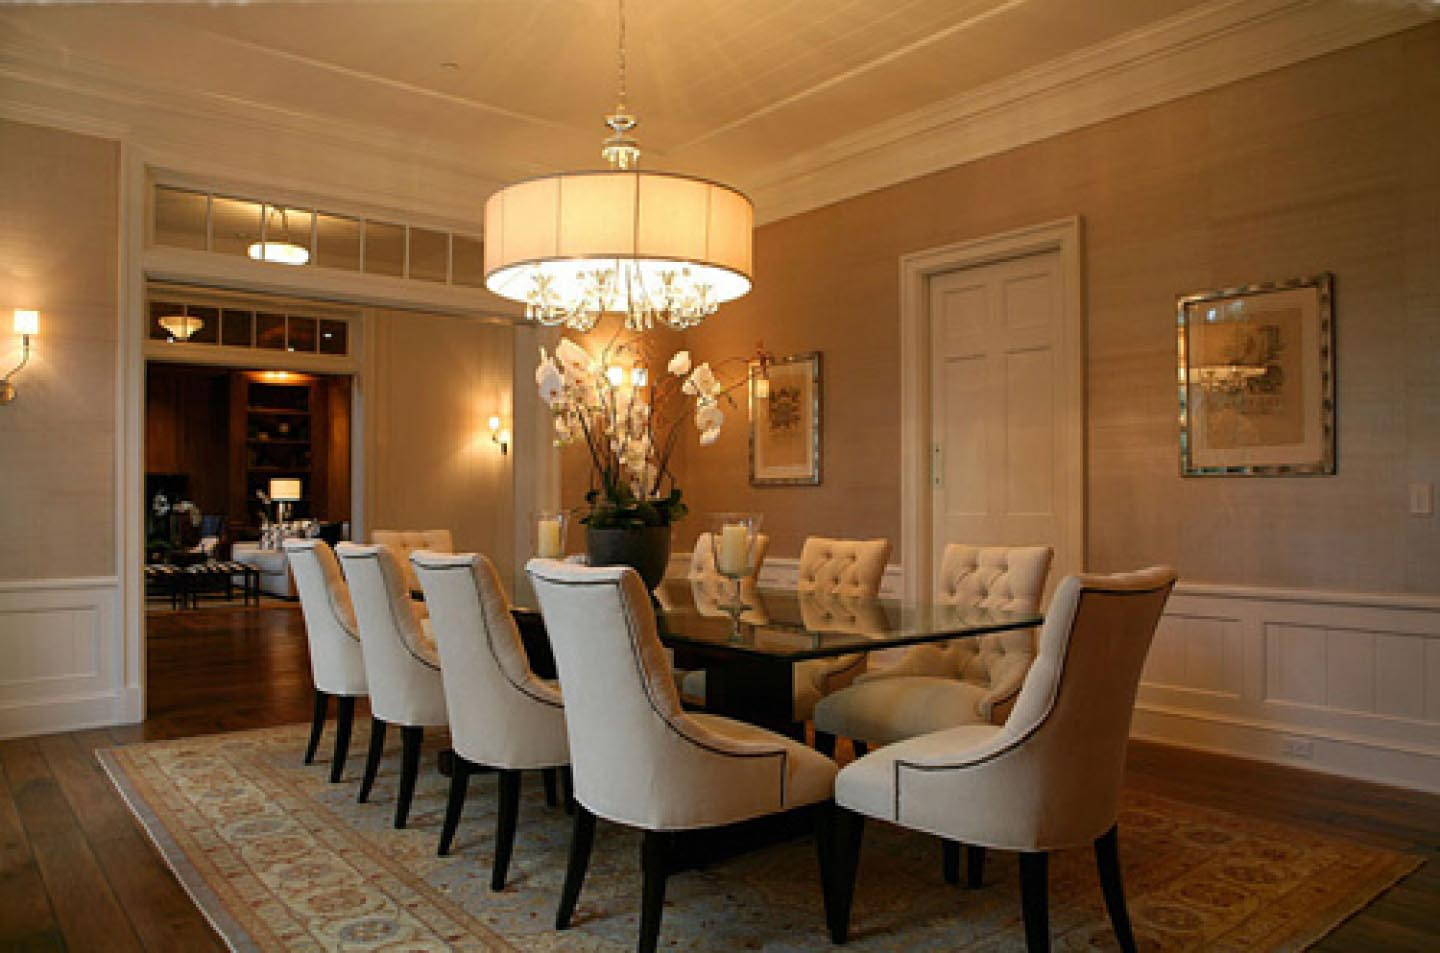 Drum Shades for Chandeliers